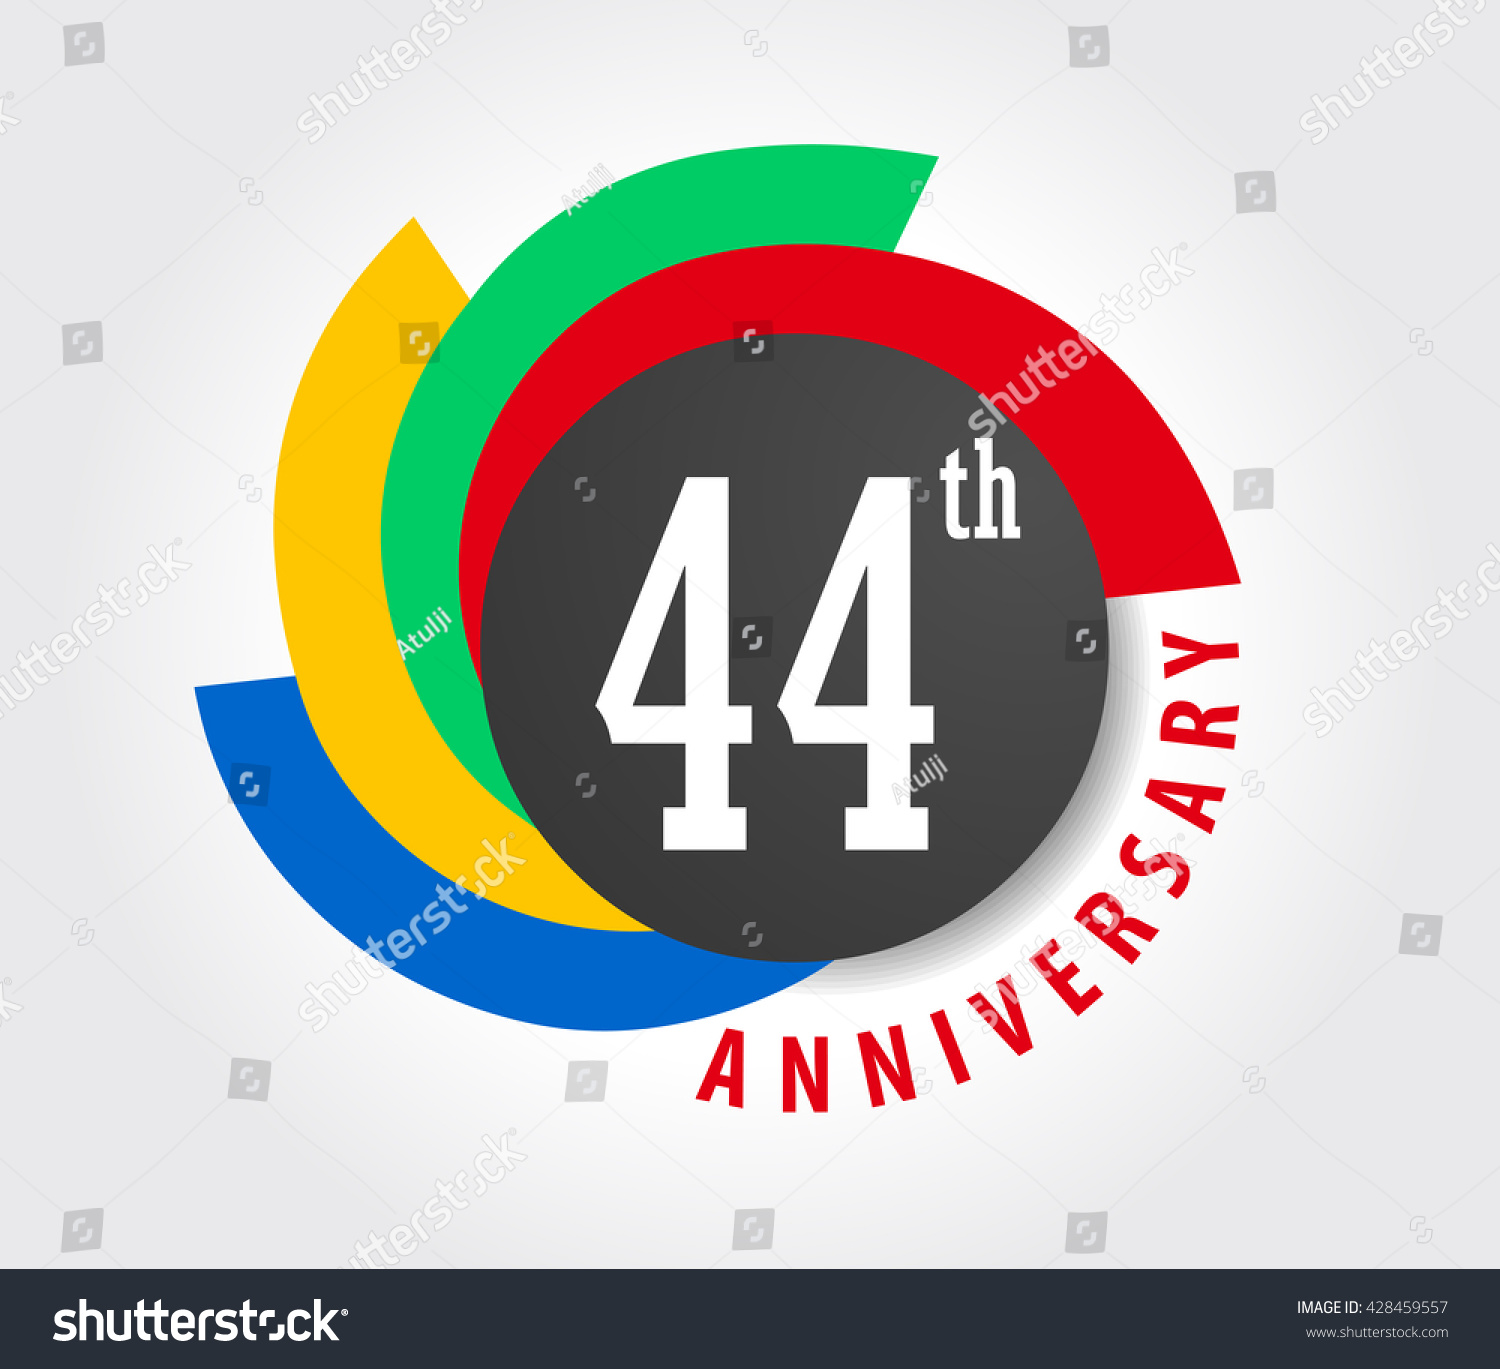 44th anniversary celebration background 44 years stock vector 44th anniversary celebration background 44 years anniversary card illustration vector eps10 biocorpaavc Gallery